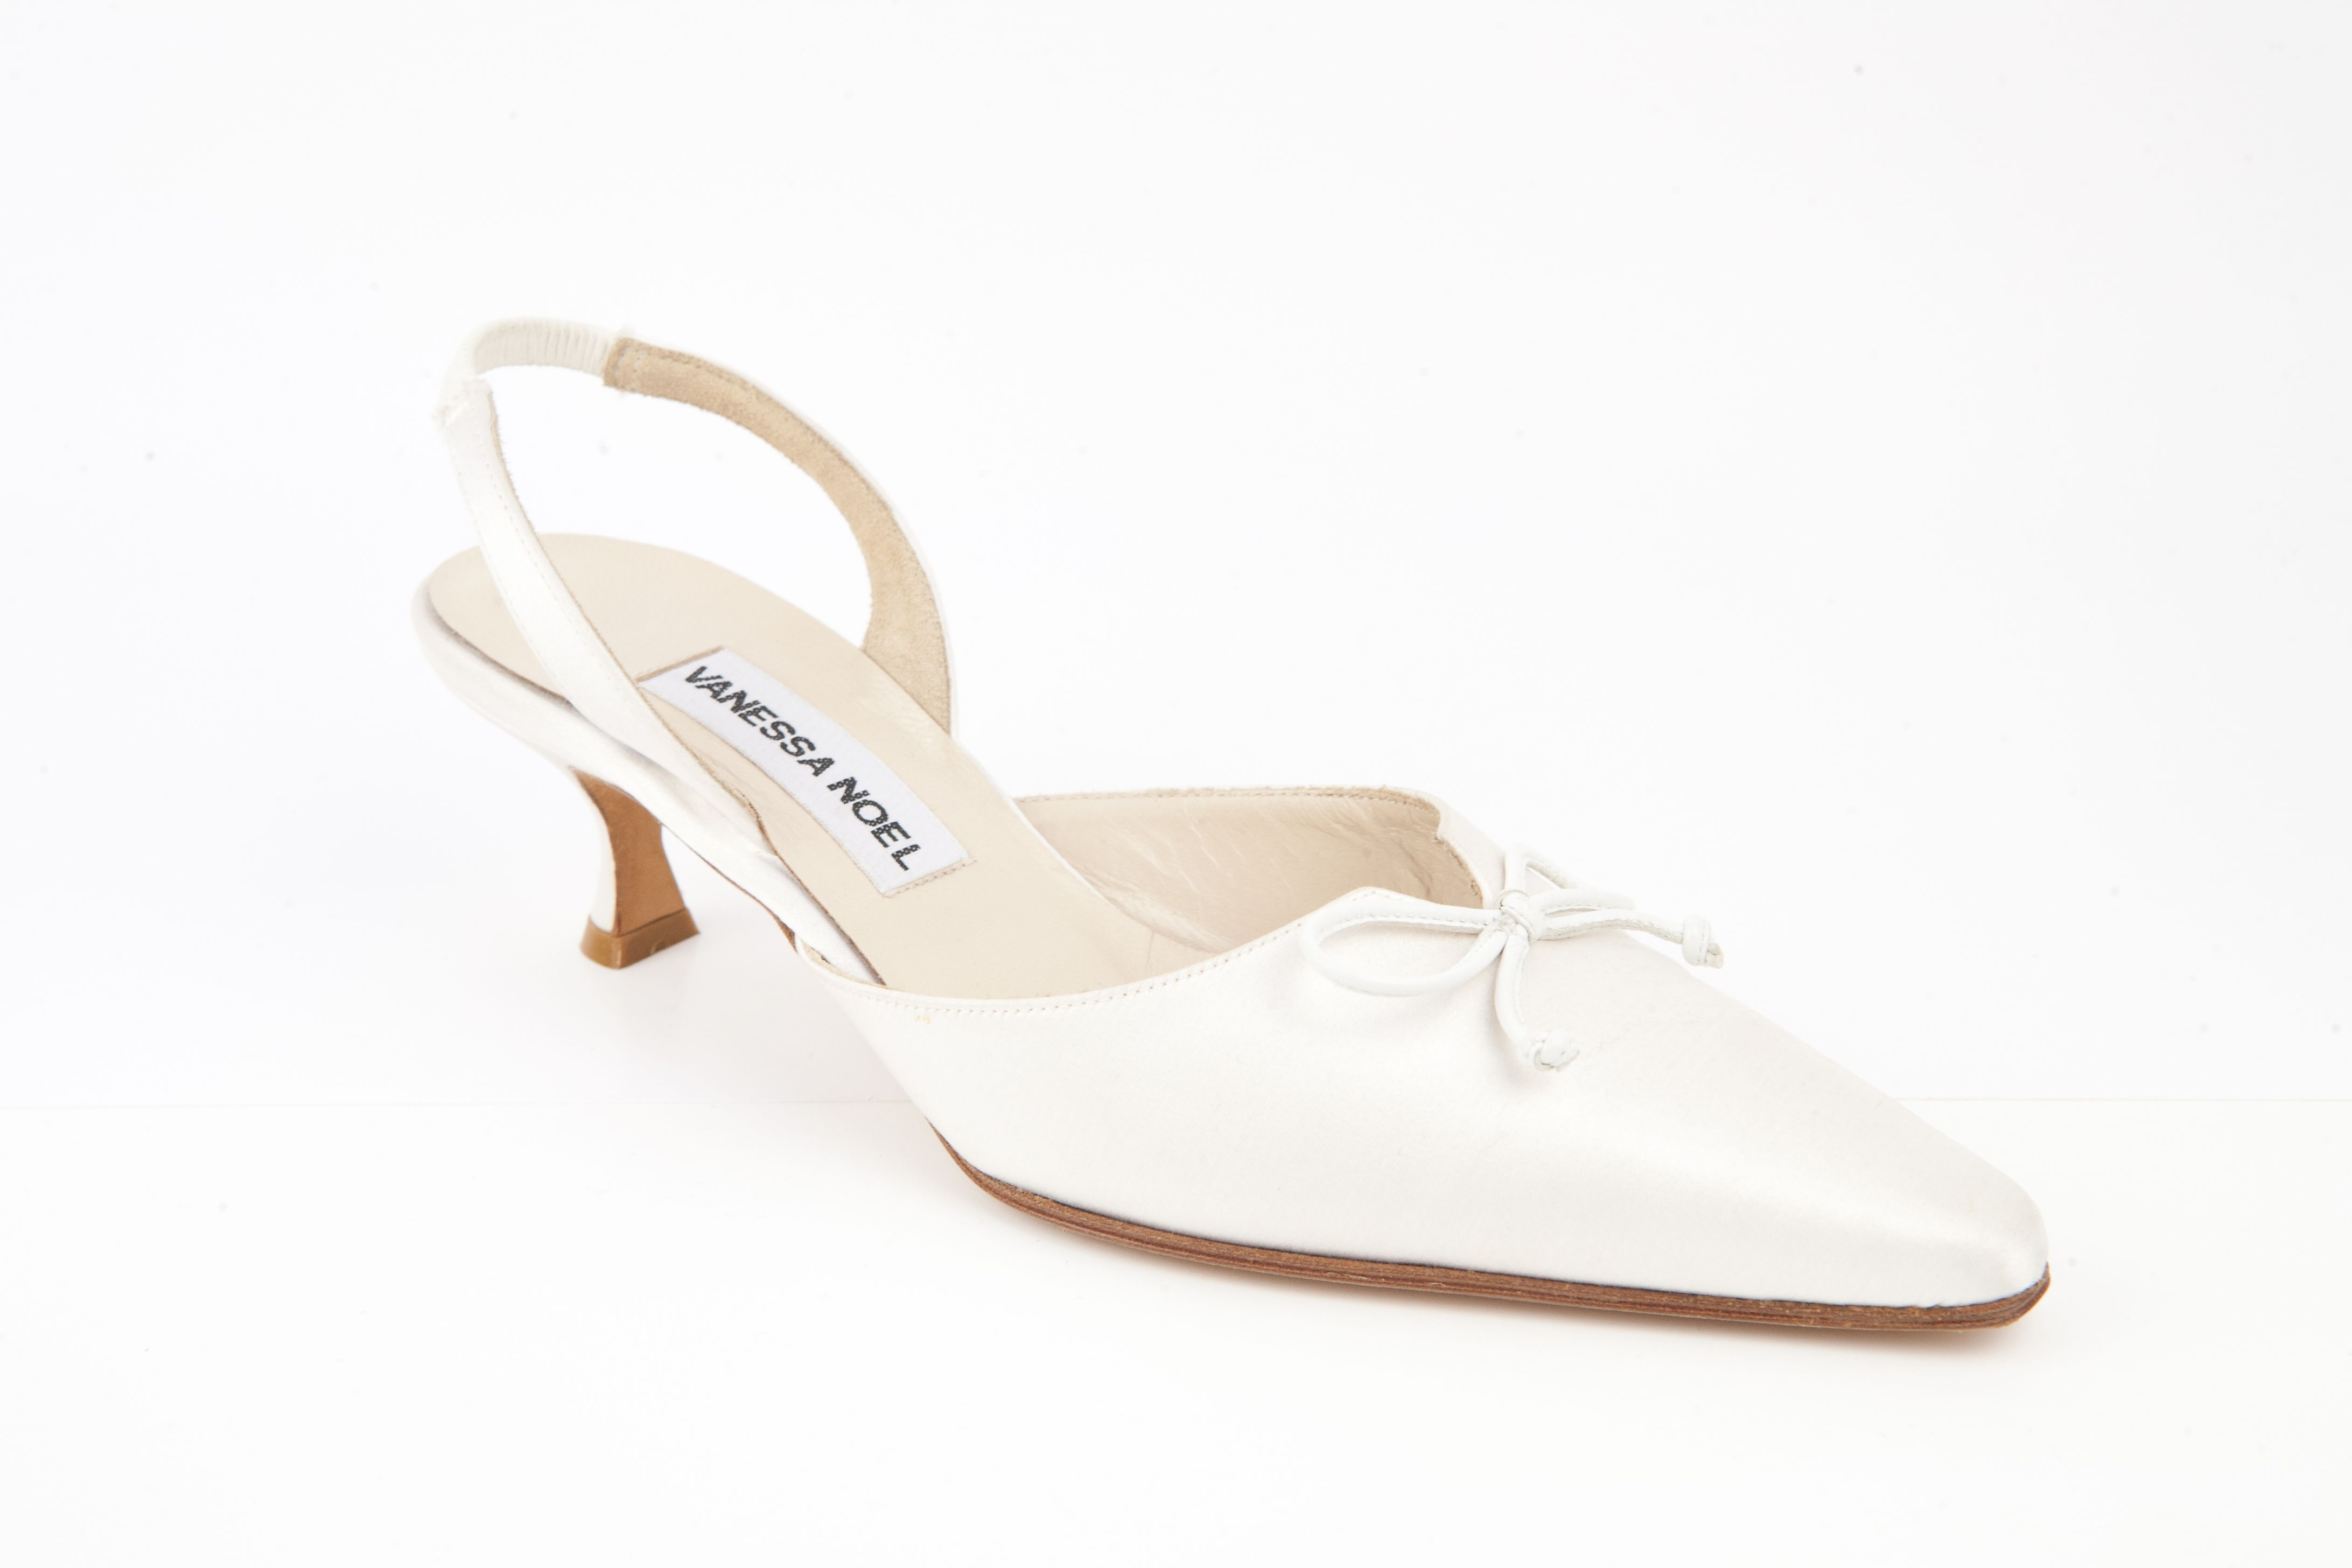 Bell Sling 50mm Timeless Kitten Heel Sling Back Pump In Dyeable White Silk Satin With A Notch Detail And A Small White Ki Kitten Heel Shoes Heels Me Too Shoes